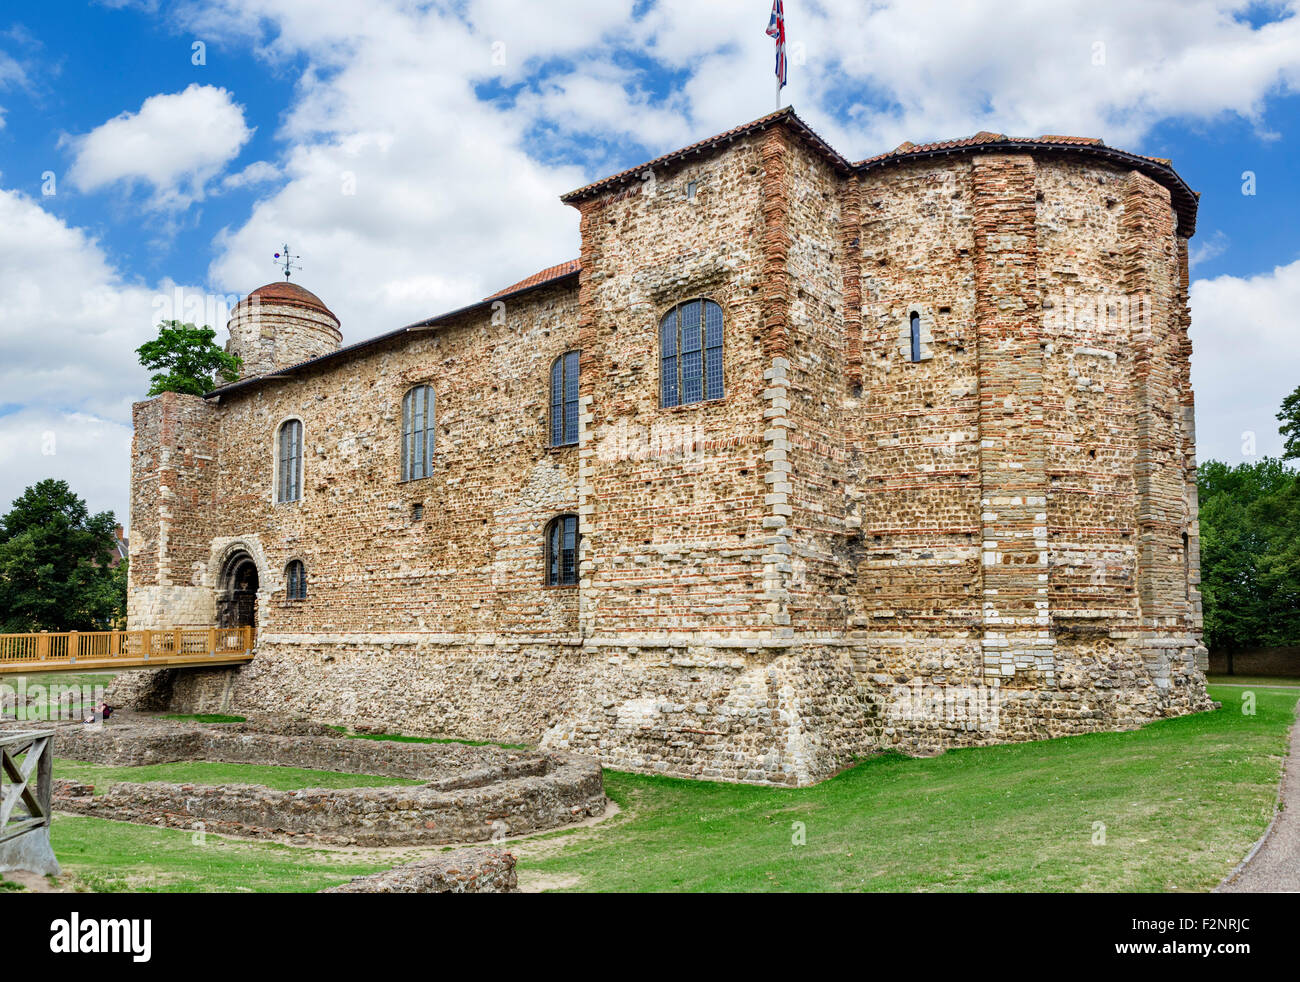 The front of Colchester Castle, Colchester, Essex, England, UK - Stock Image